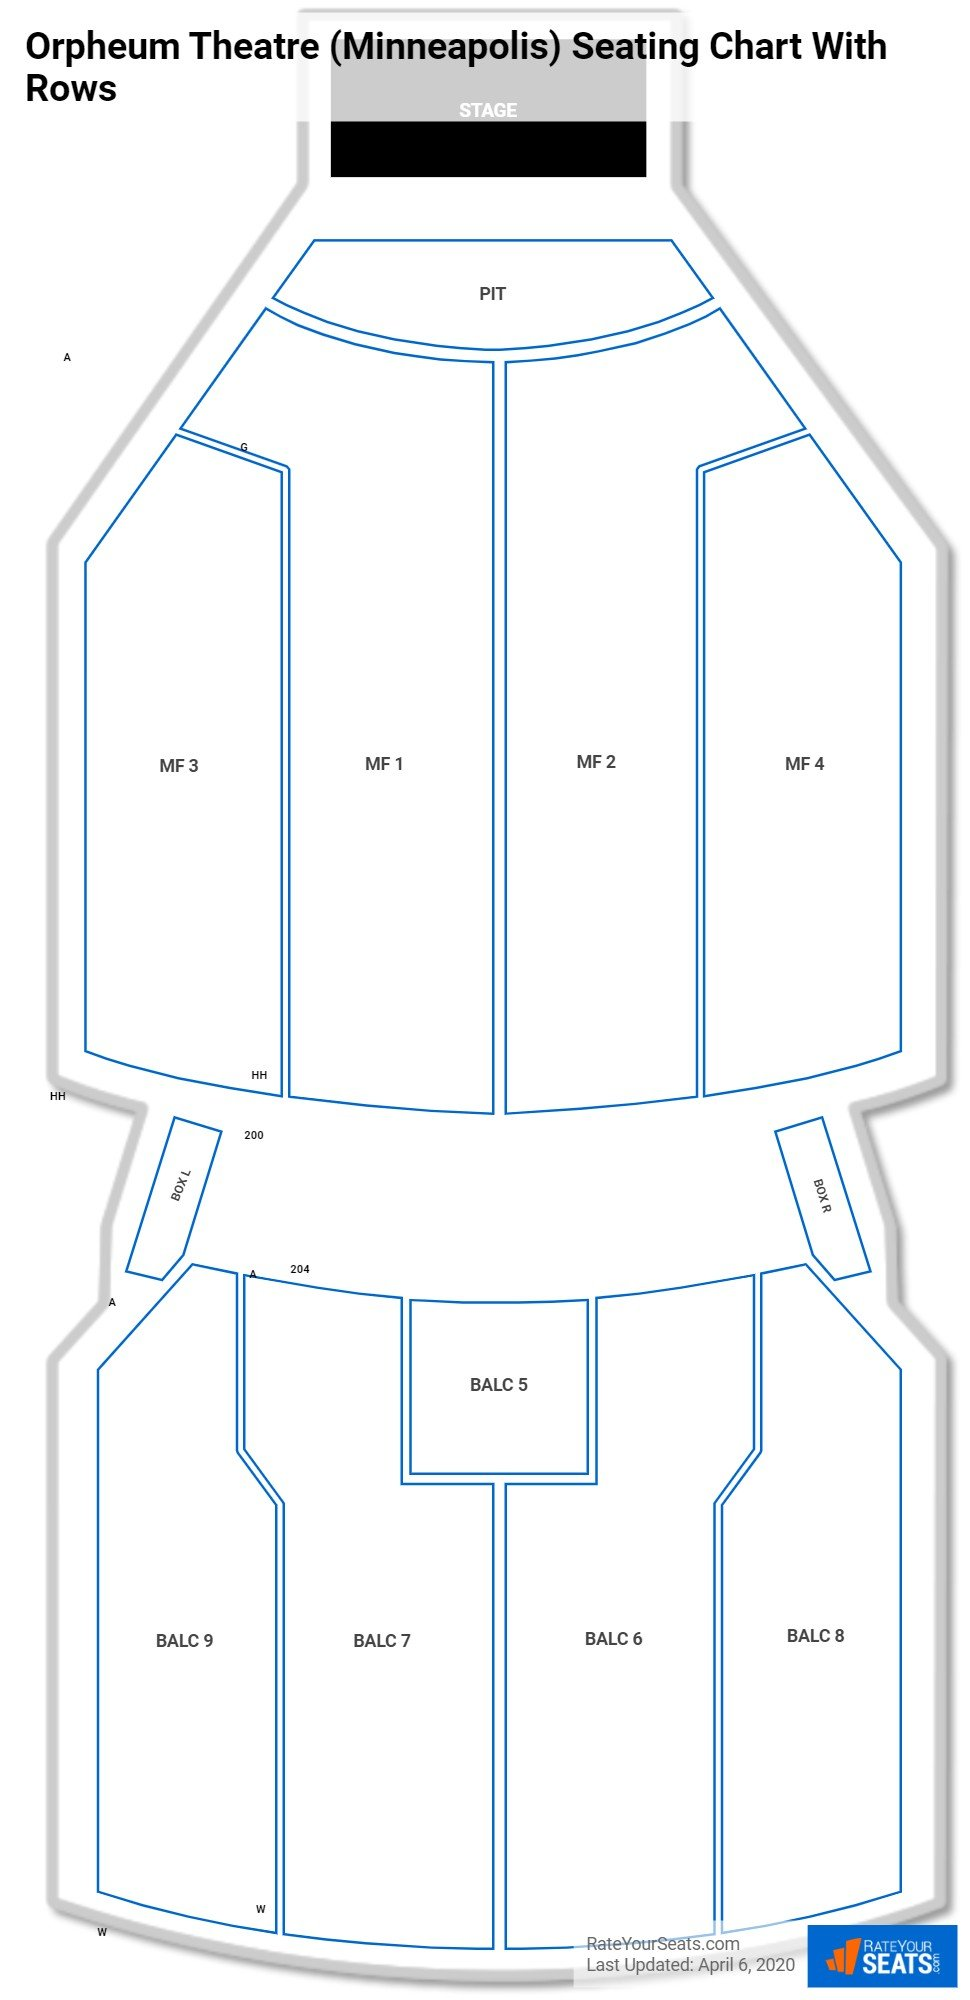 Orpheum Theatre (Minneapolis) seating chart with rows